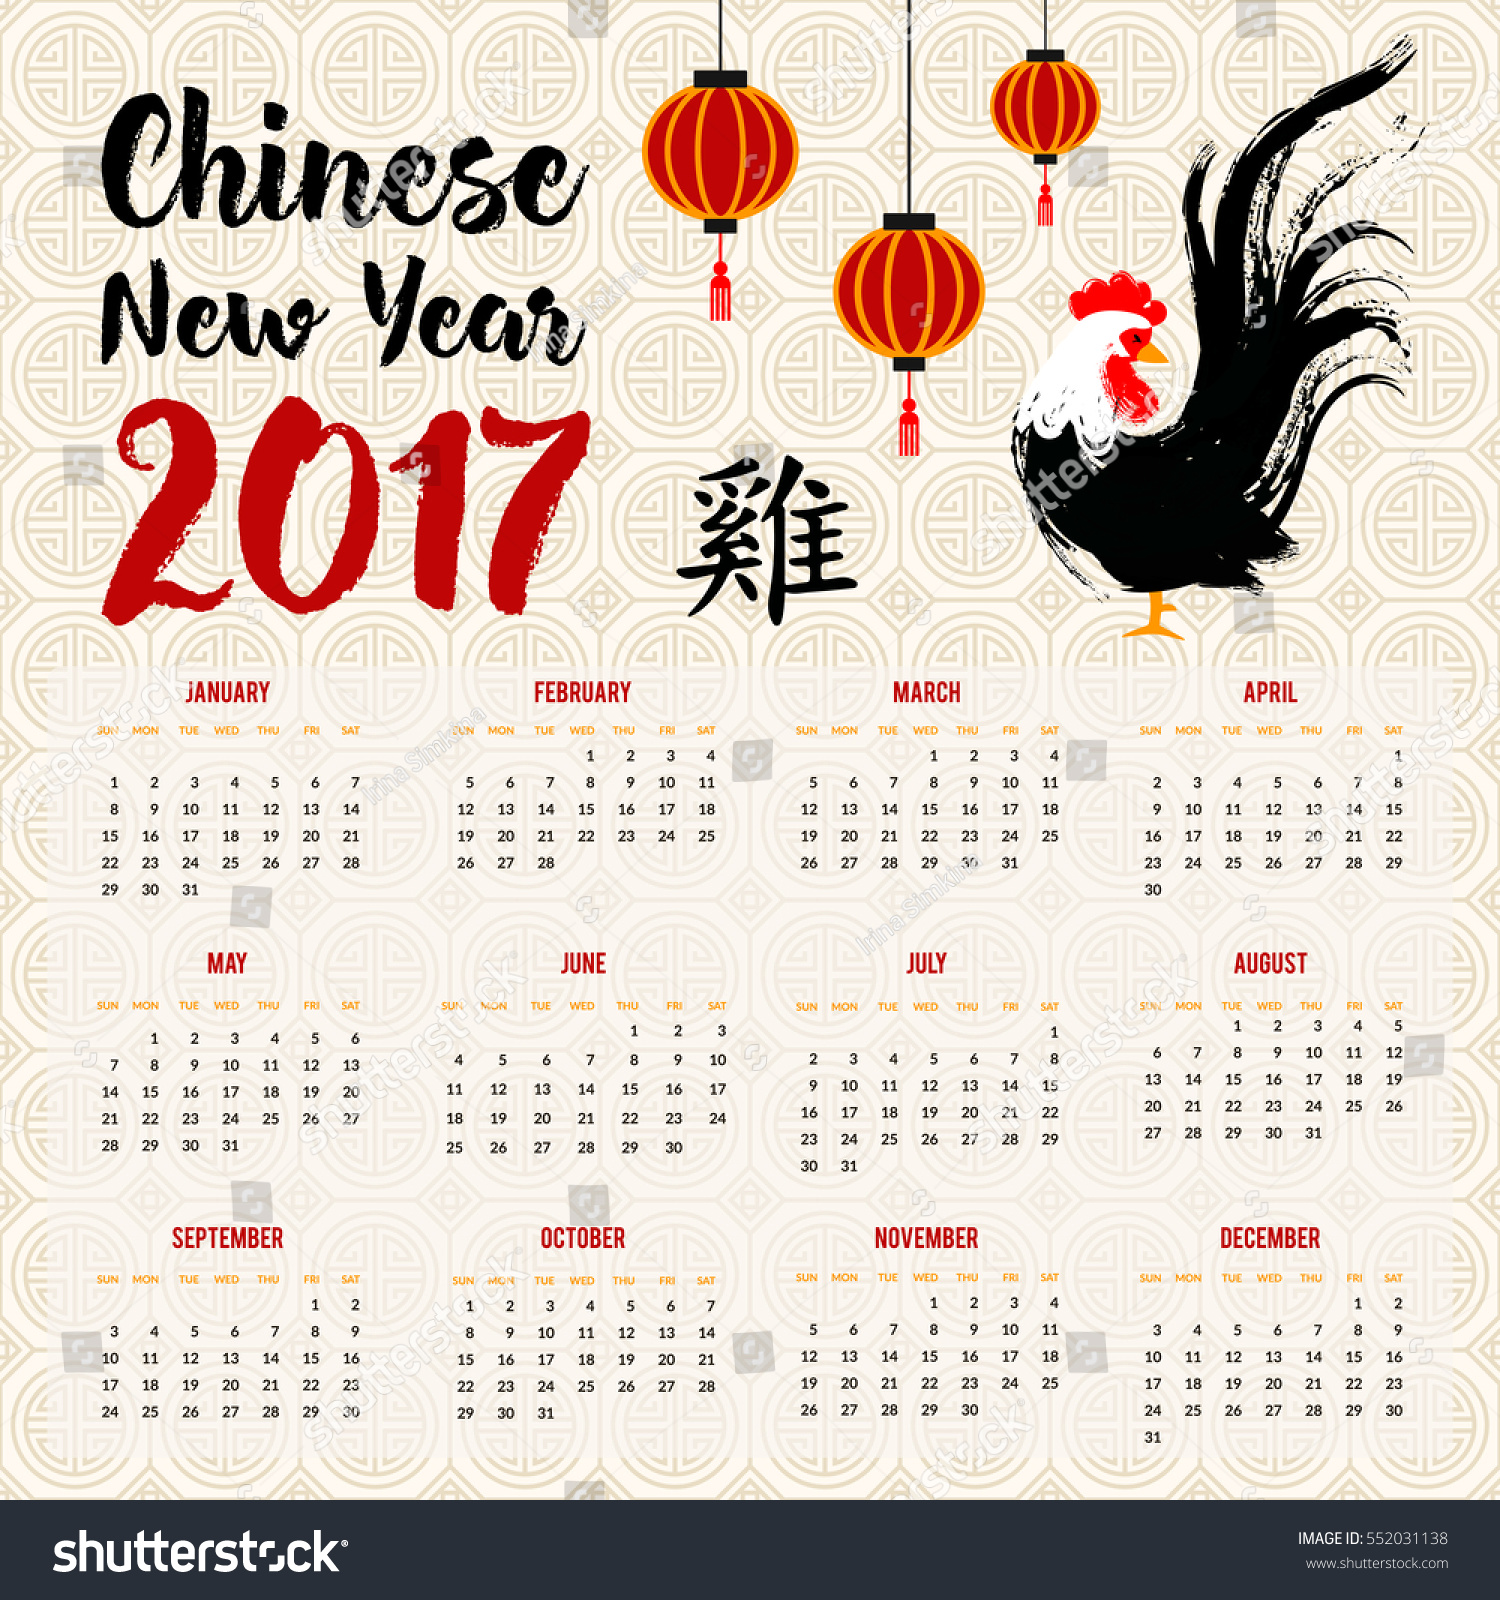 Japanese New Year Calendar : Calendar chinese new year elements stock vector